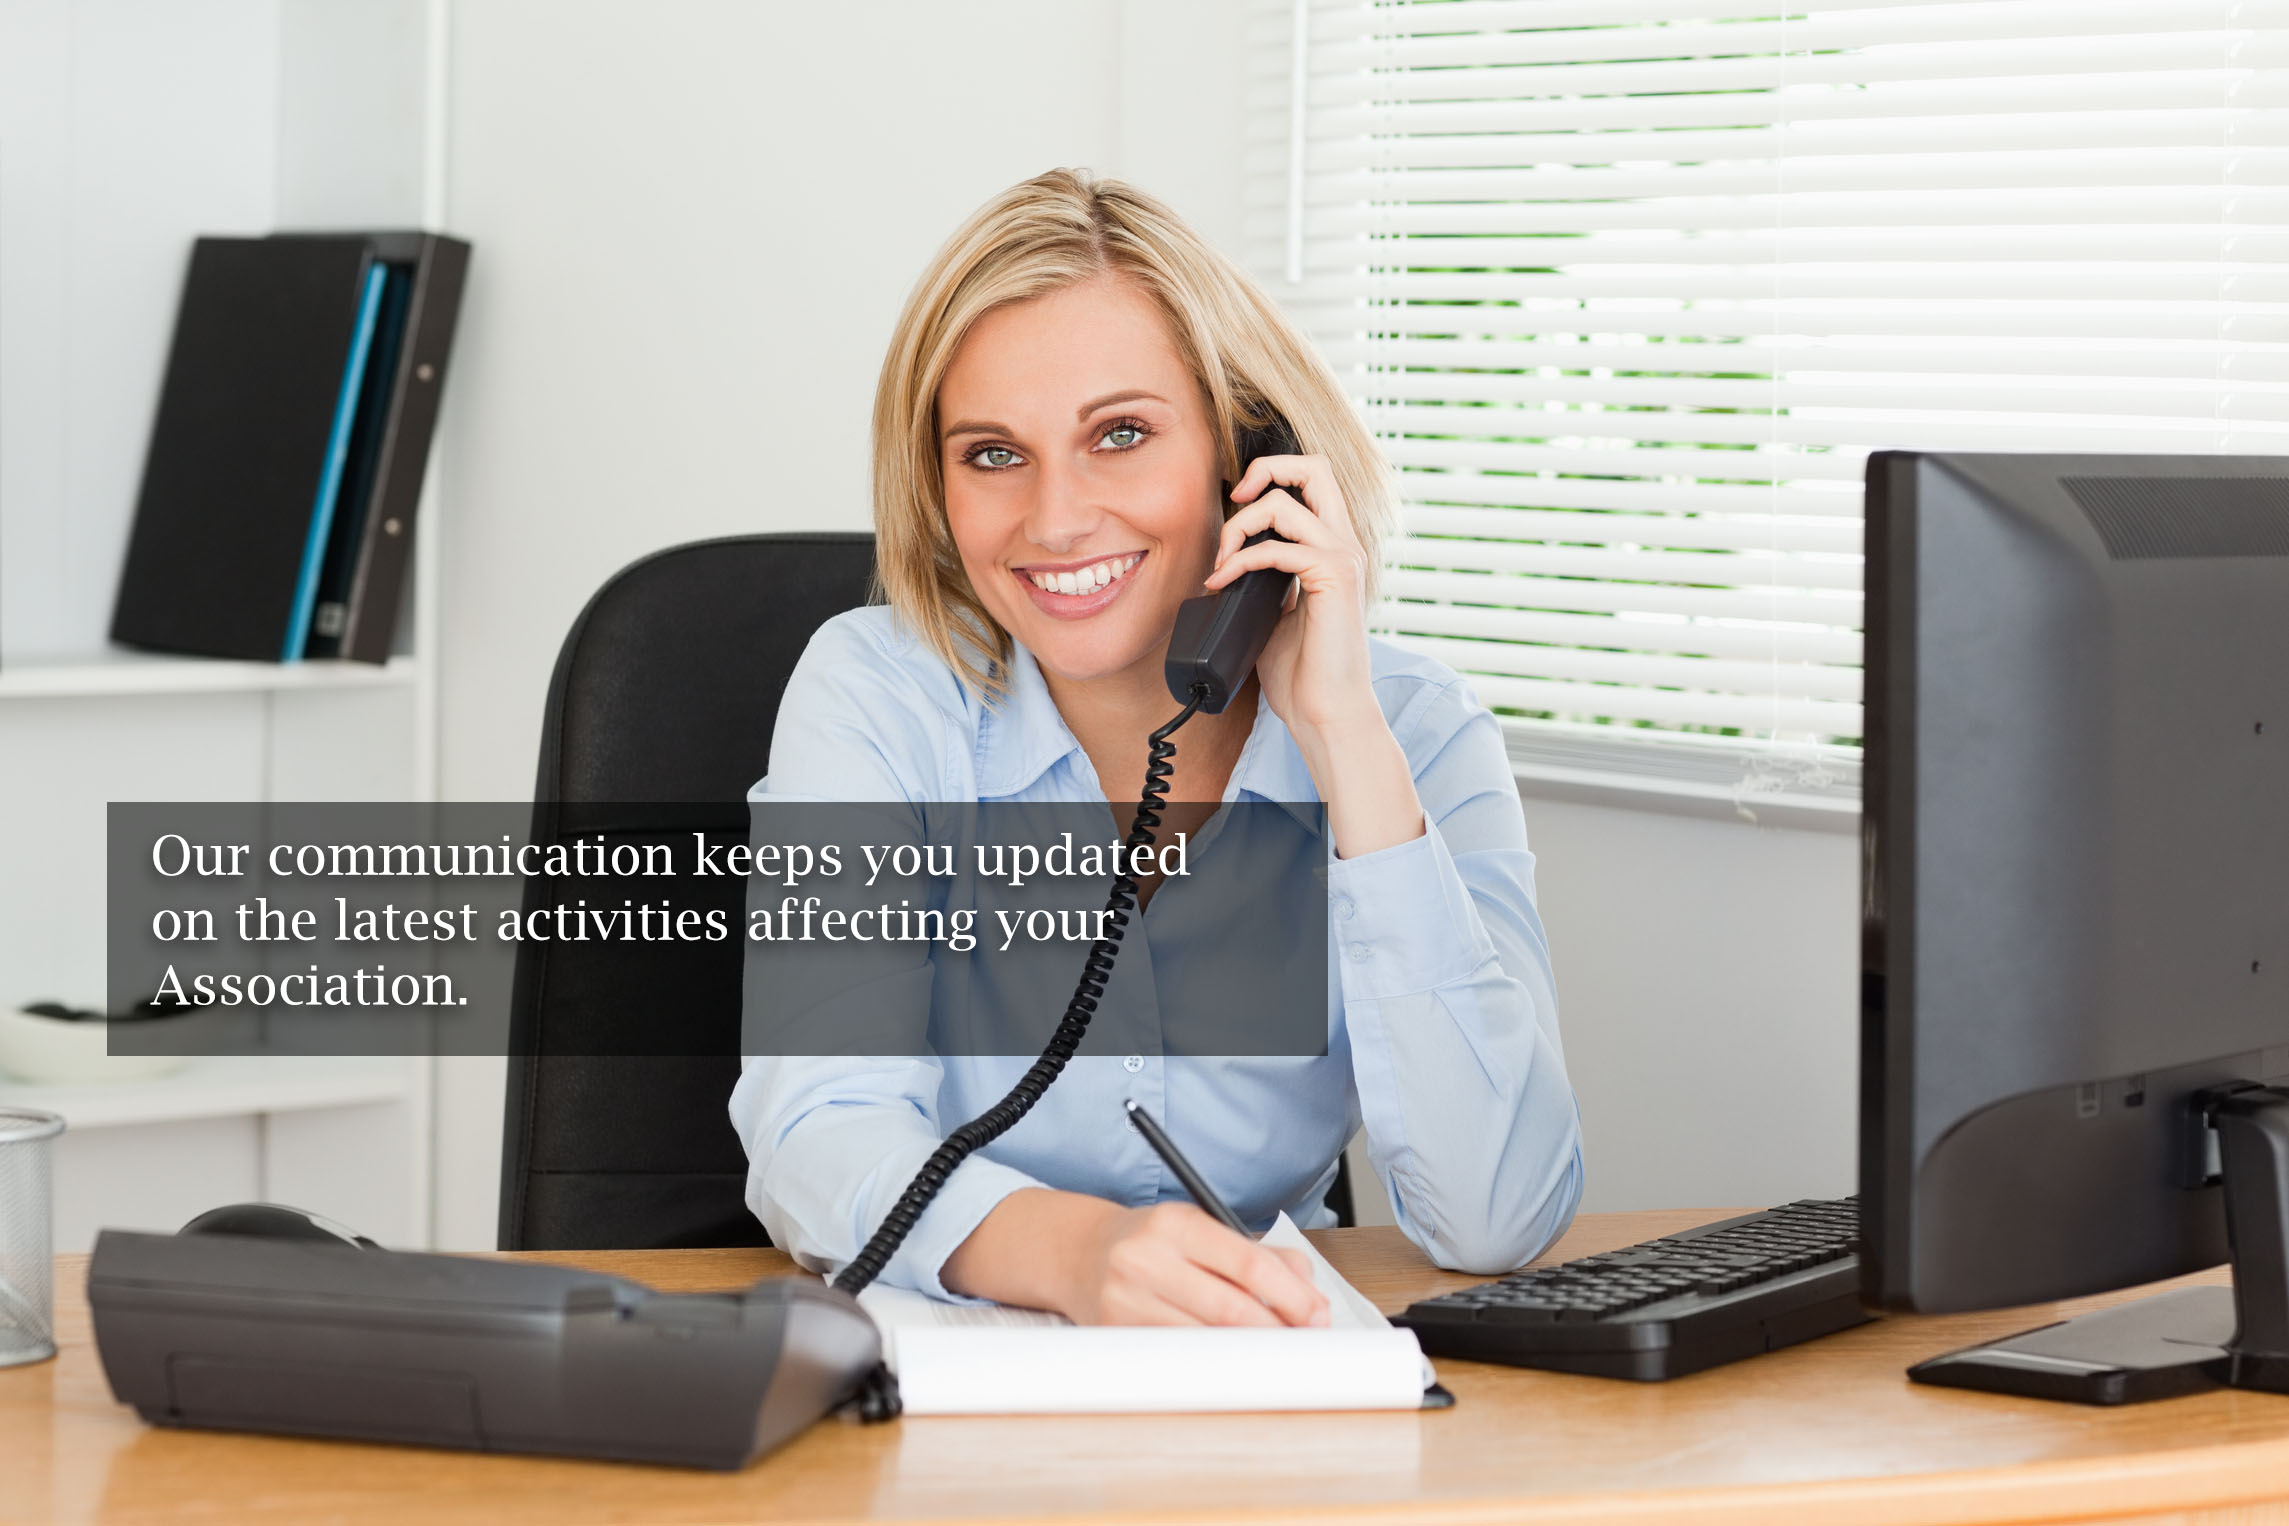 woman in association management at desk on phone